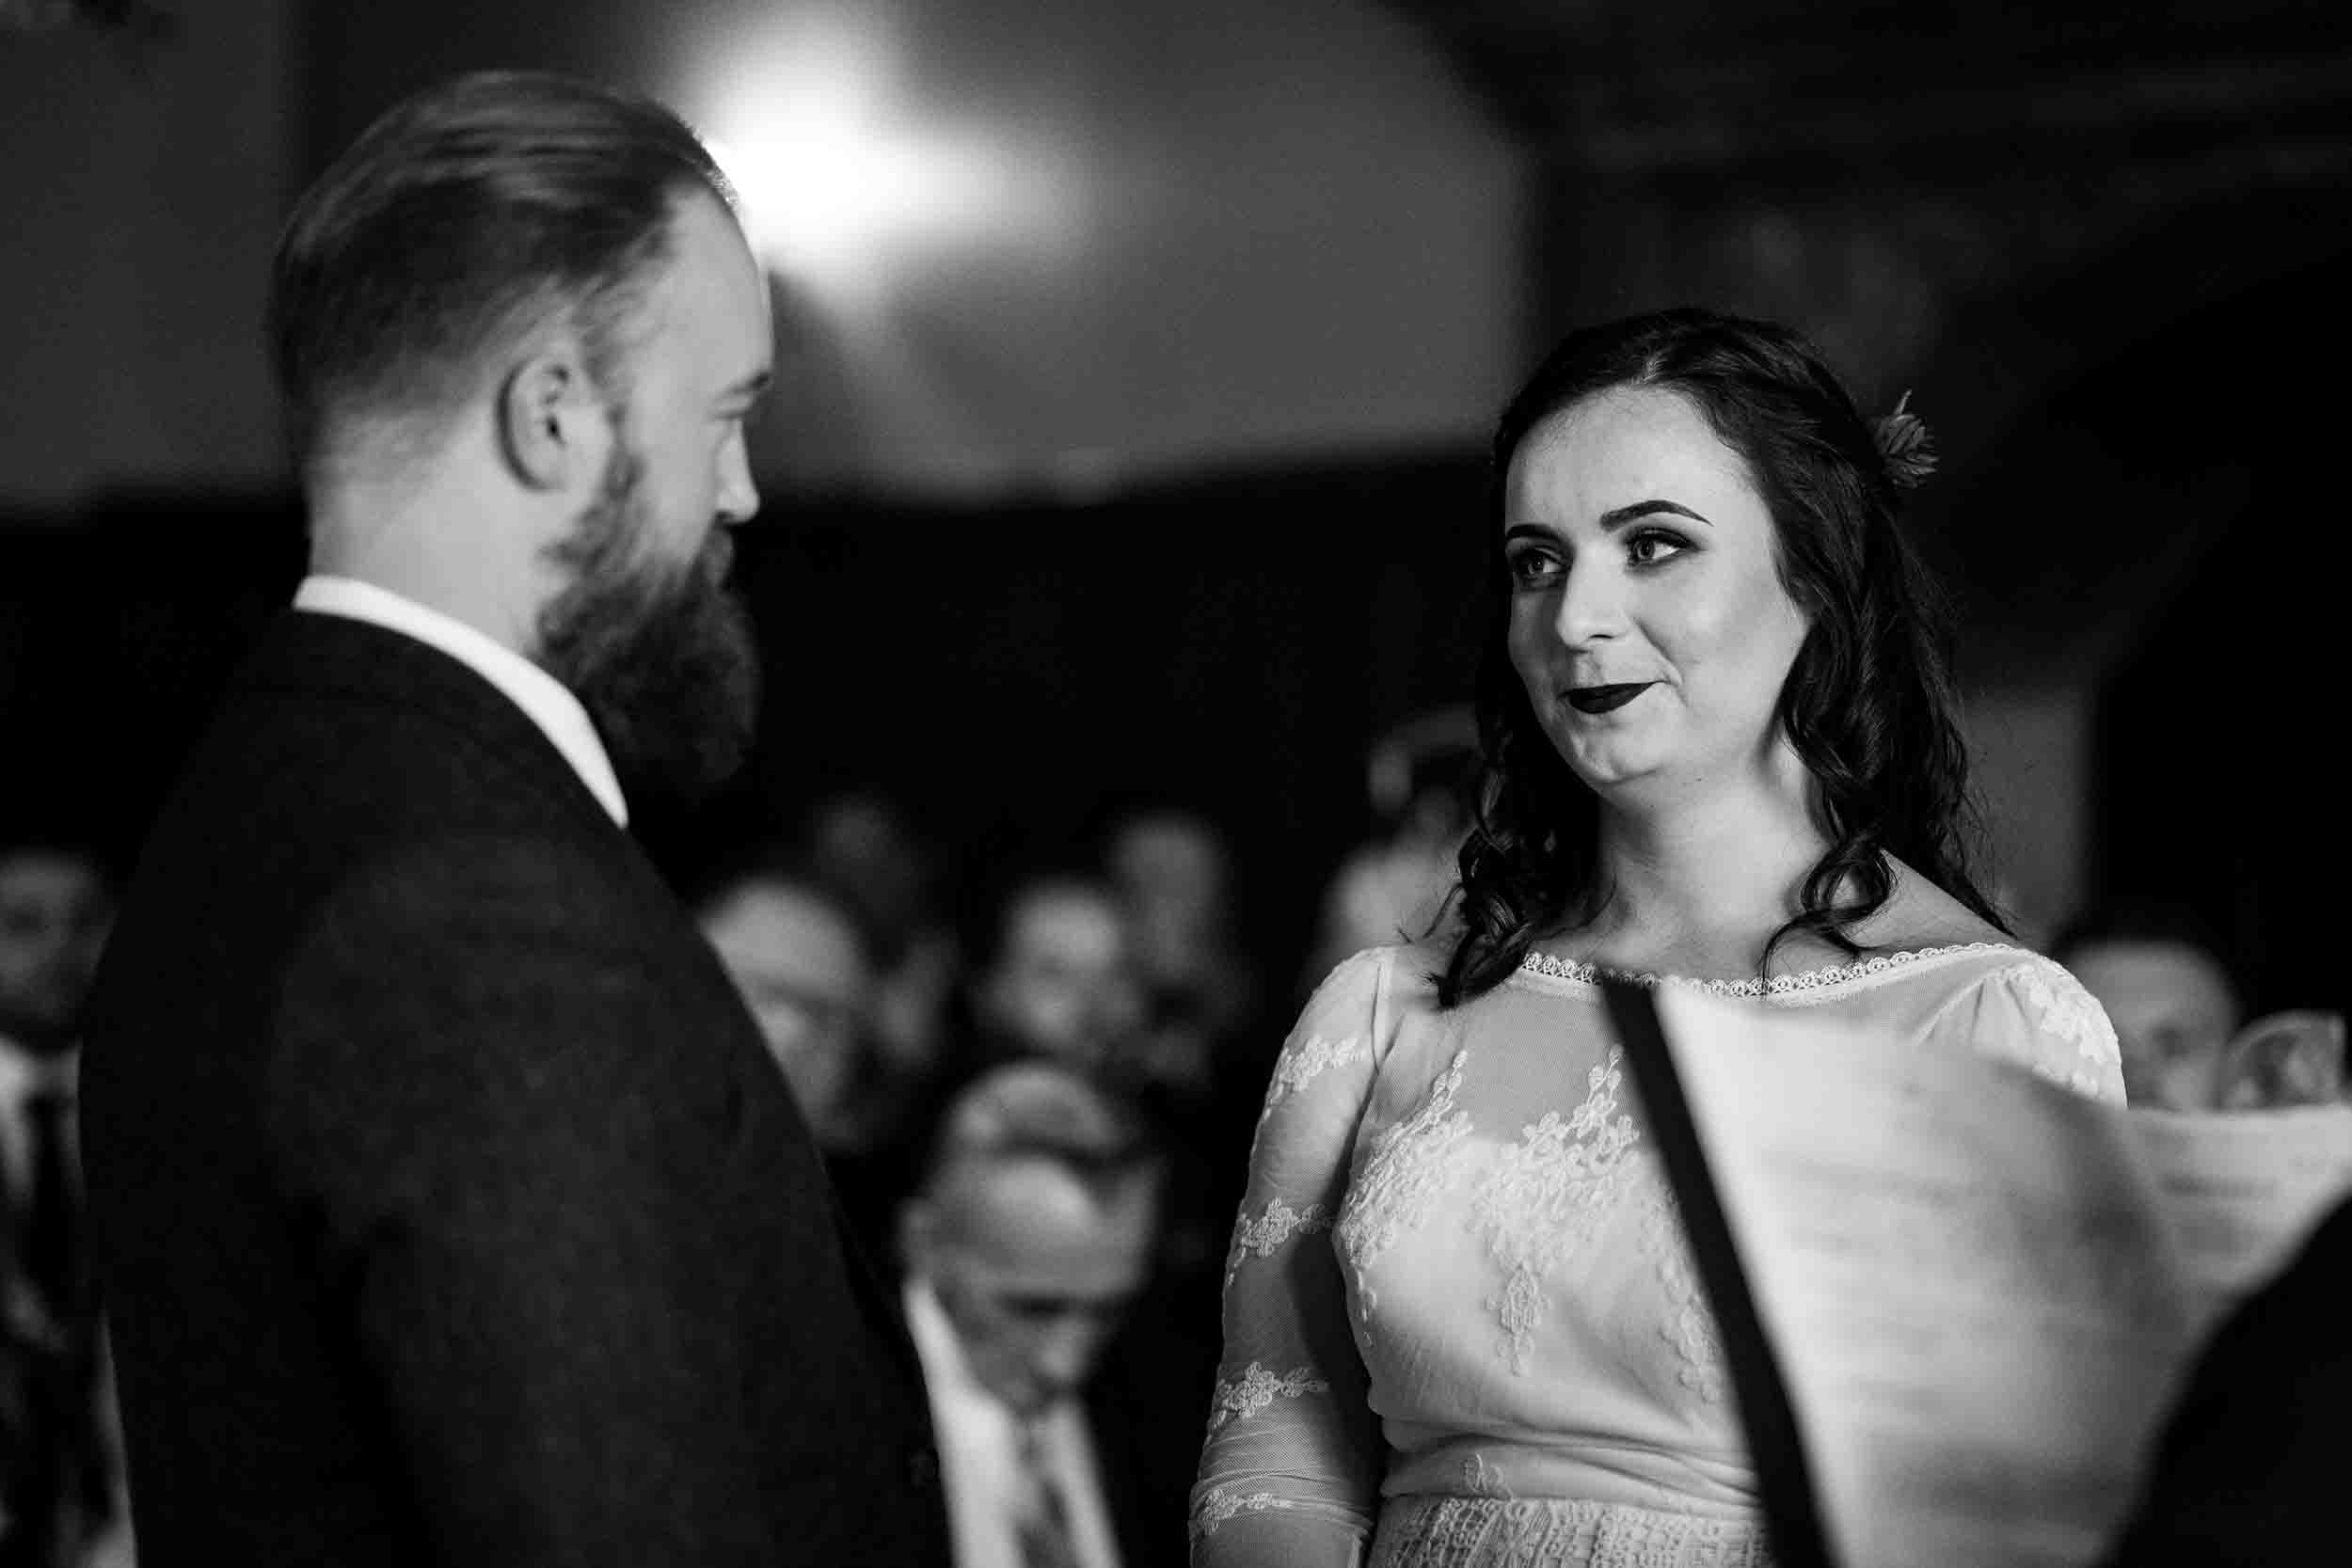 a black and white image of a bride looking at a groom as they say their vows